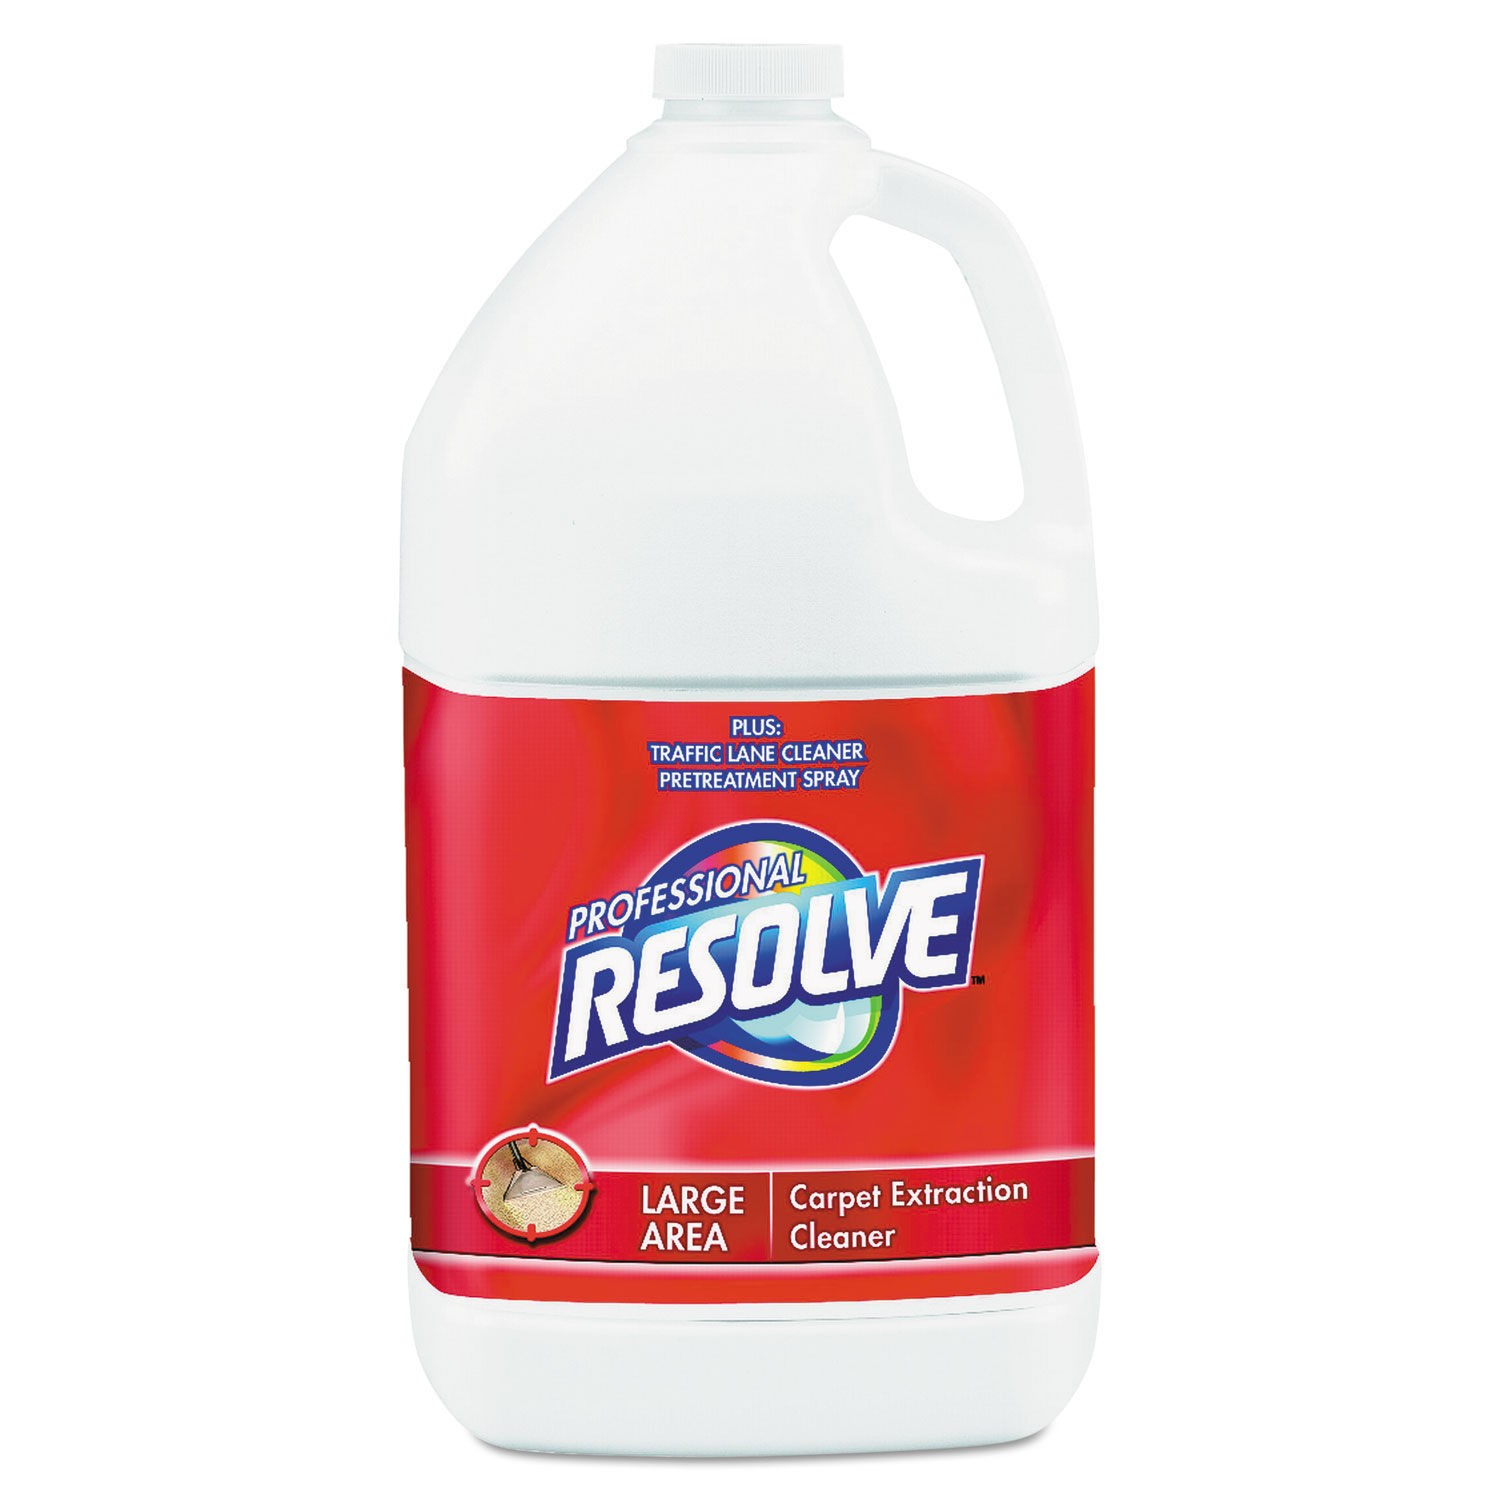 Resolve Carpet Extraction Cleaner Concentrate, 1 Gallon, 4/Carton